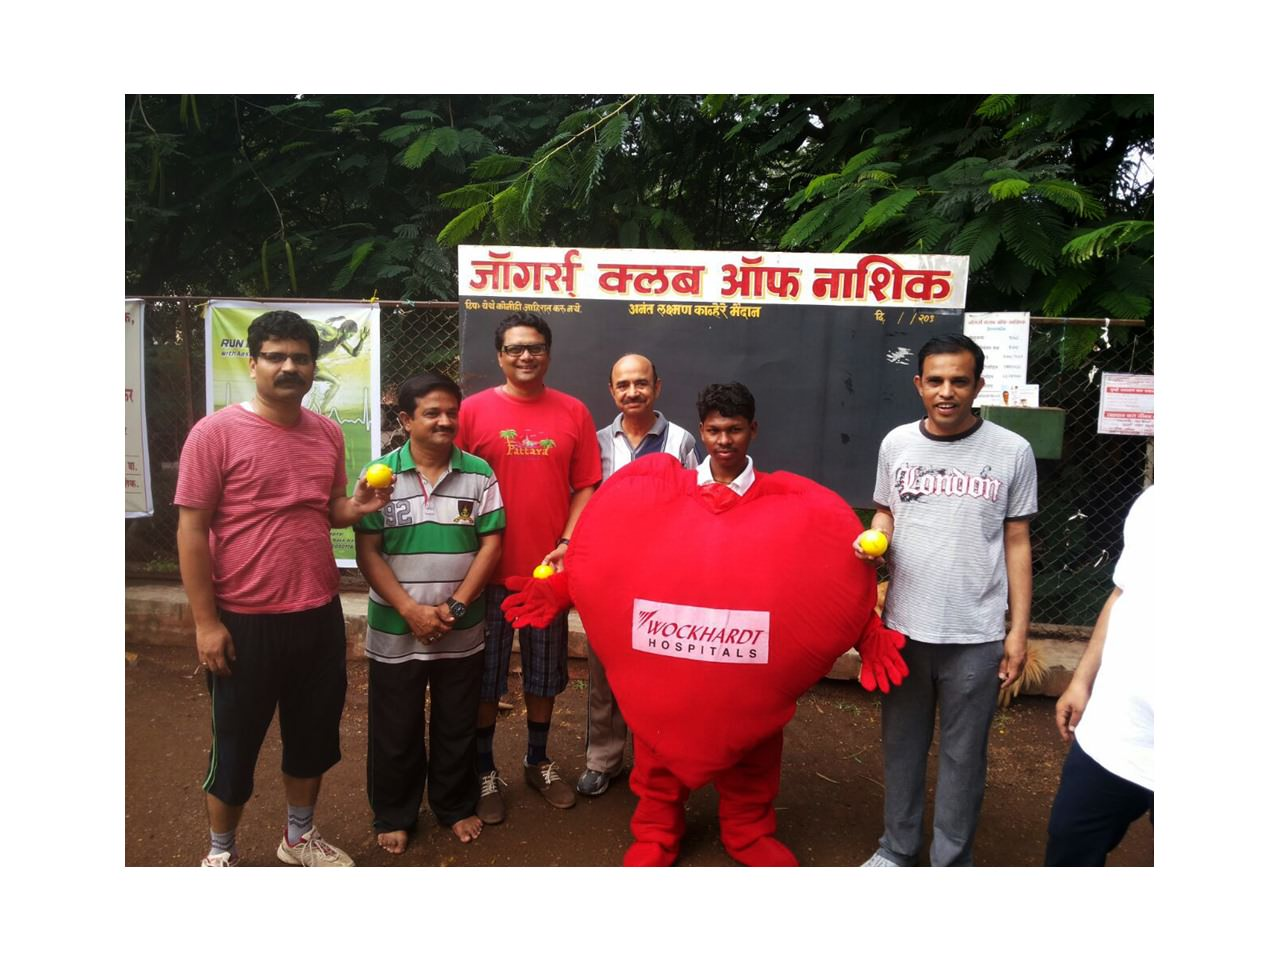 Healthy heart promoted among joggers and morning walkers for Wockhardt World Heart Day